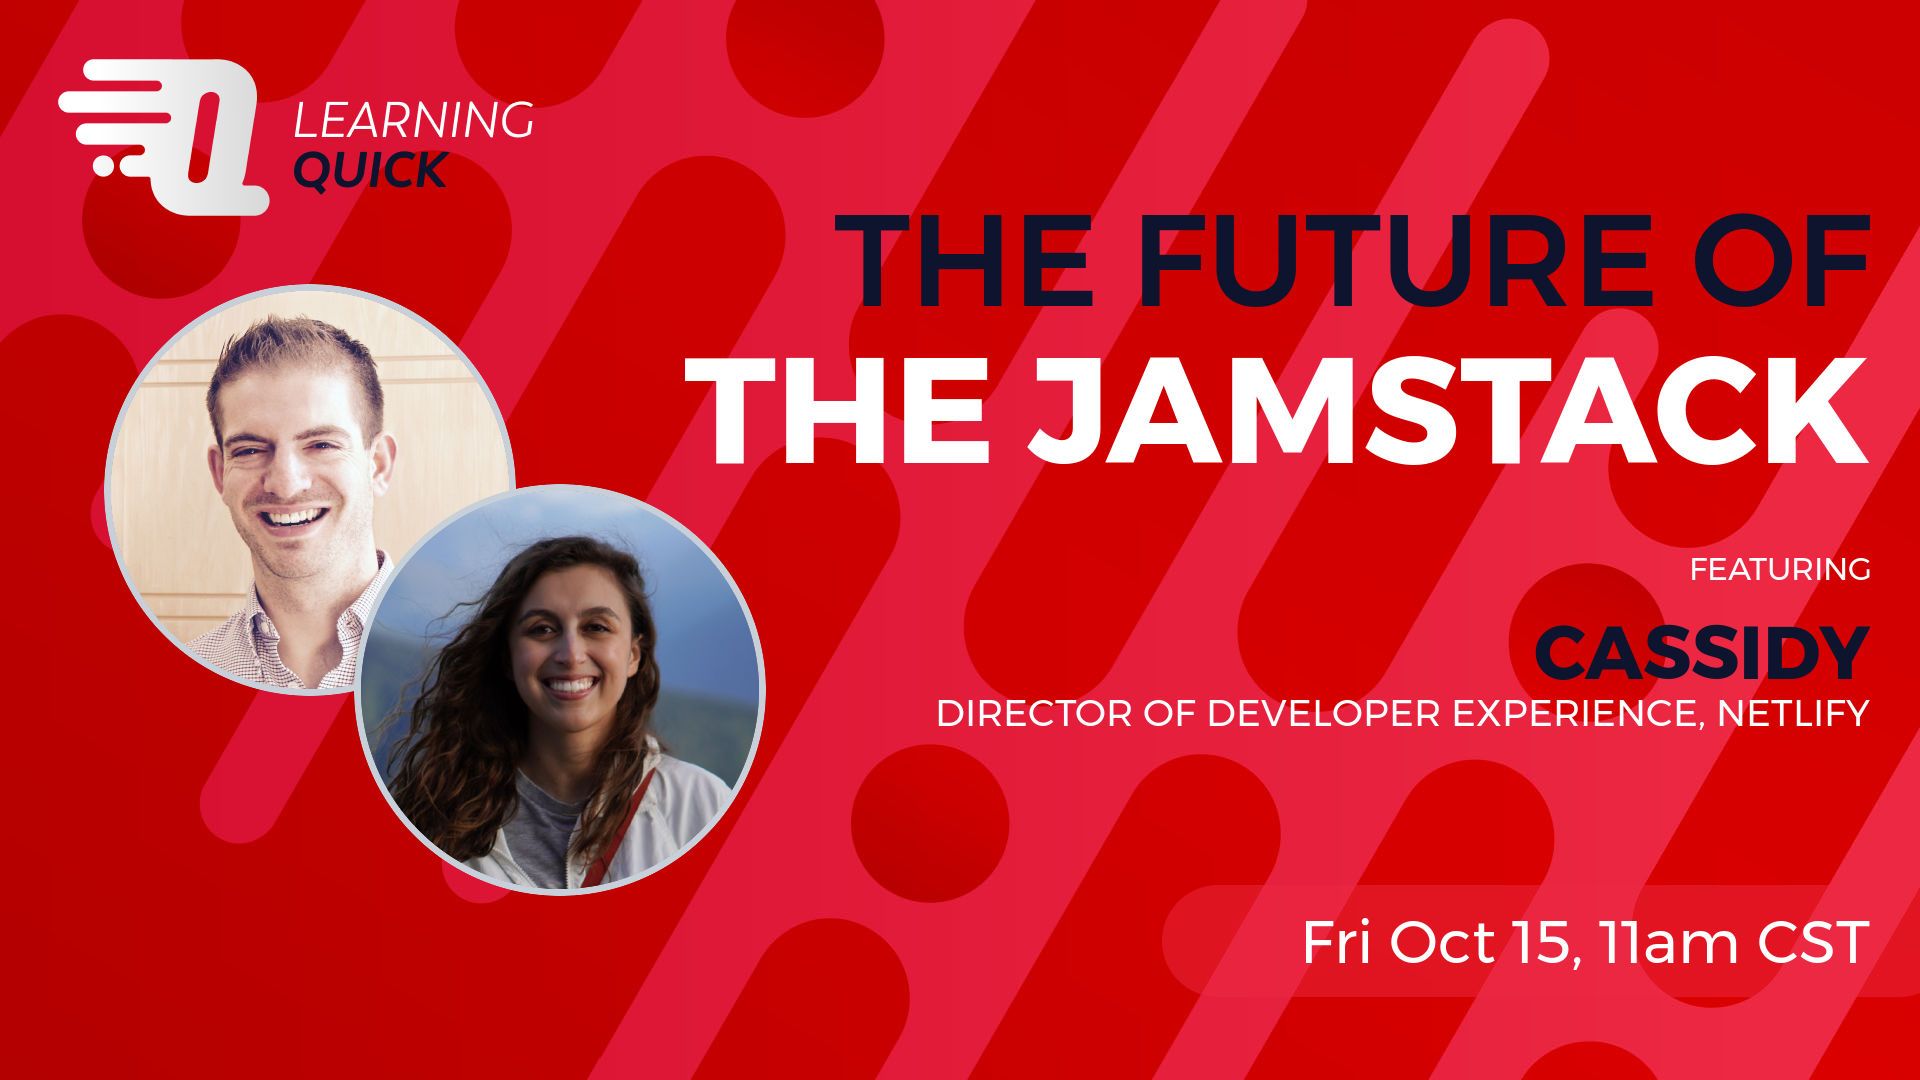 The Future of the Jamstack with Cassidy